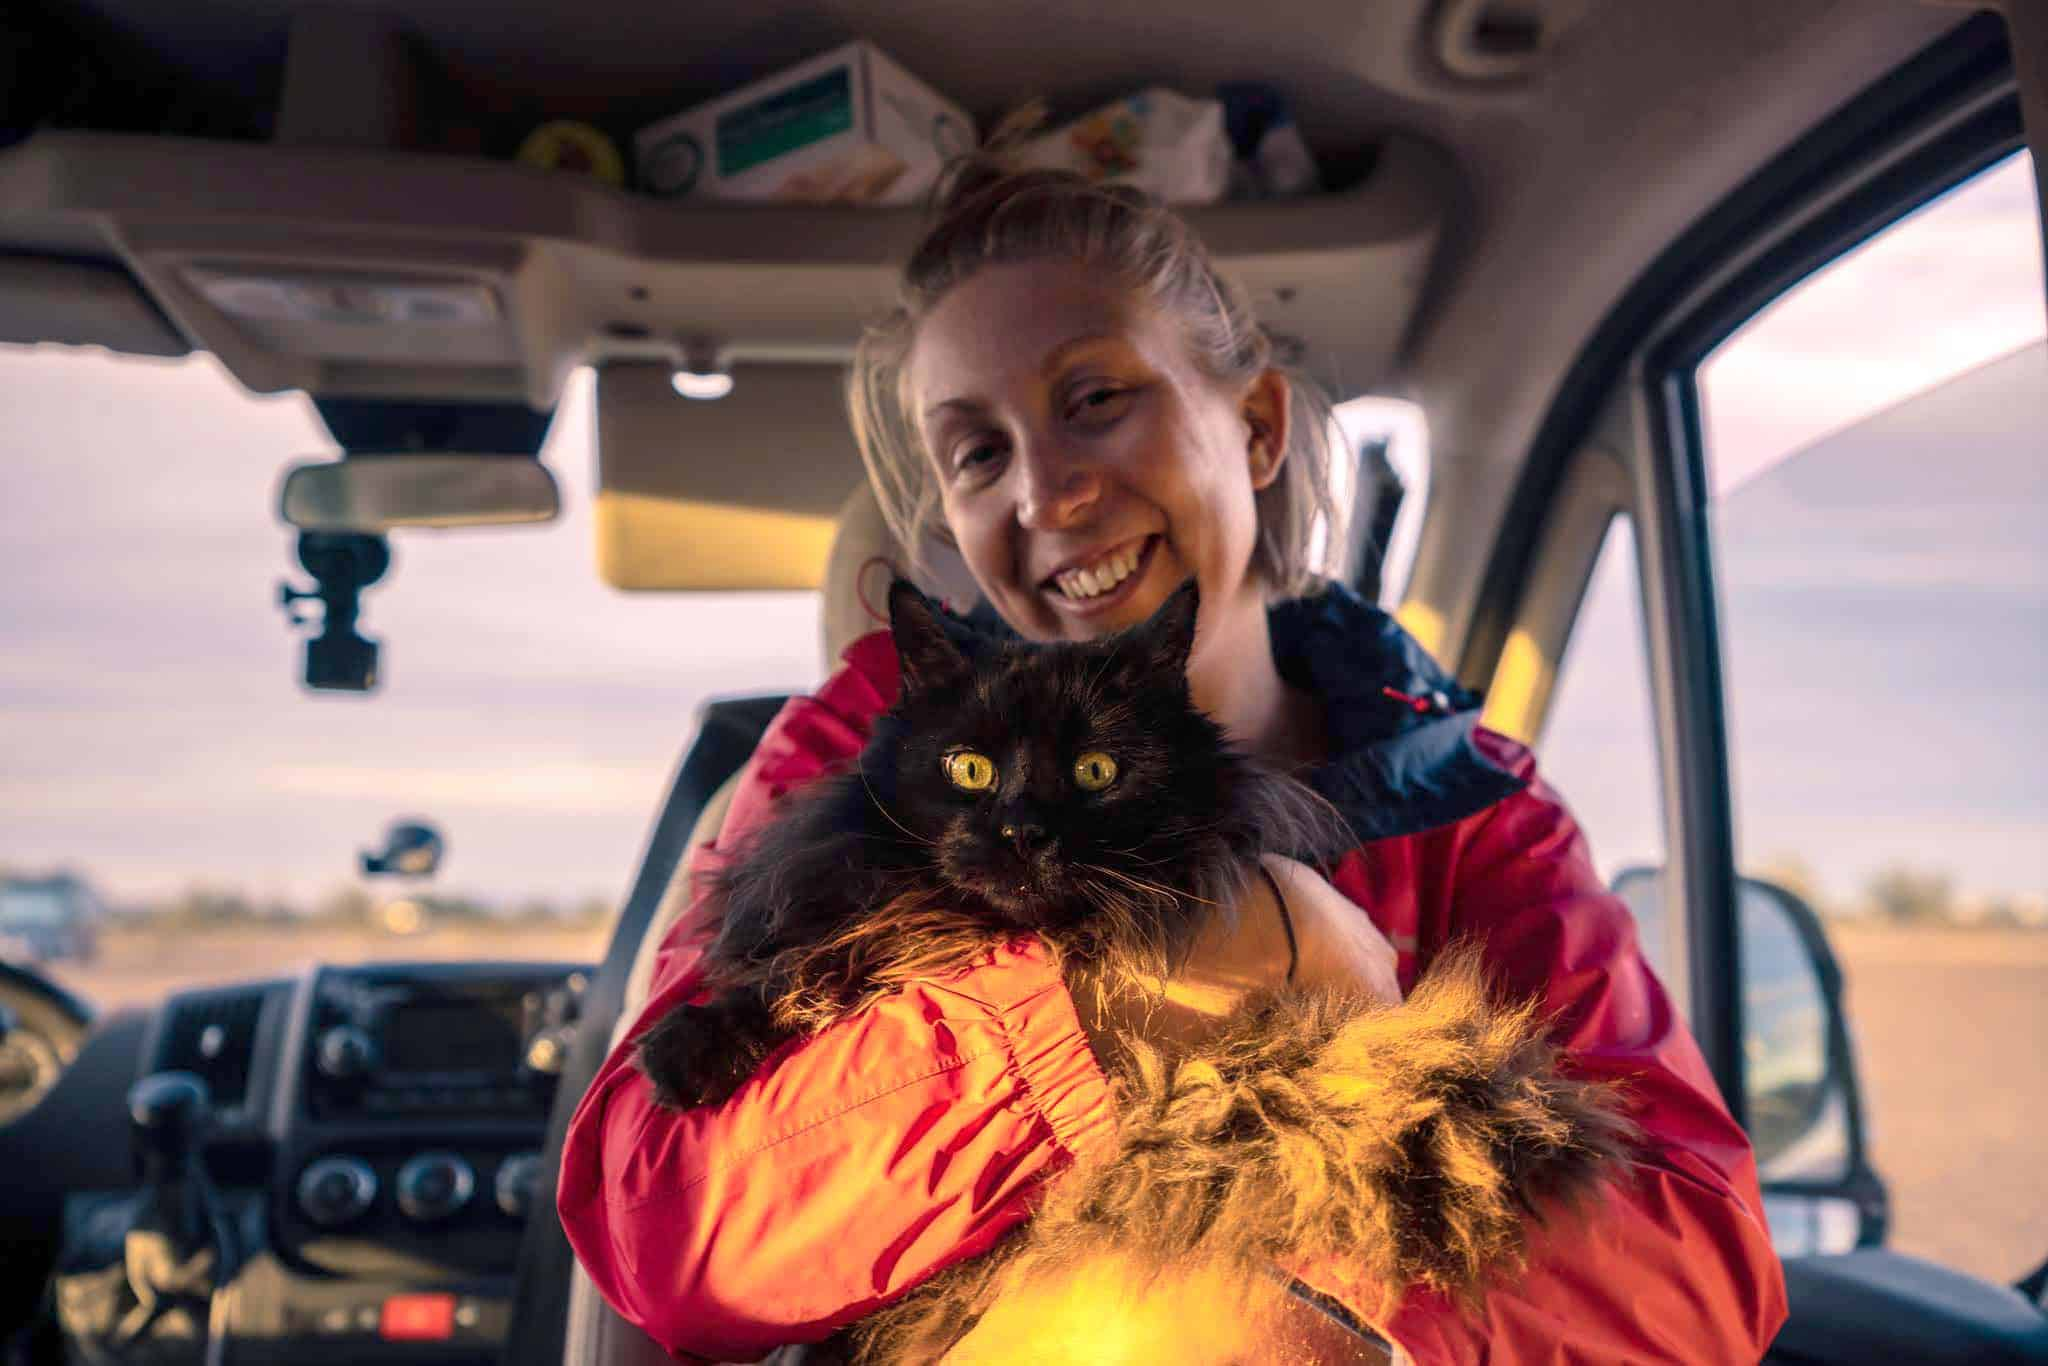 Parker the cat and Shauna in the front of their campervan